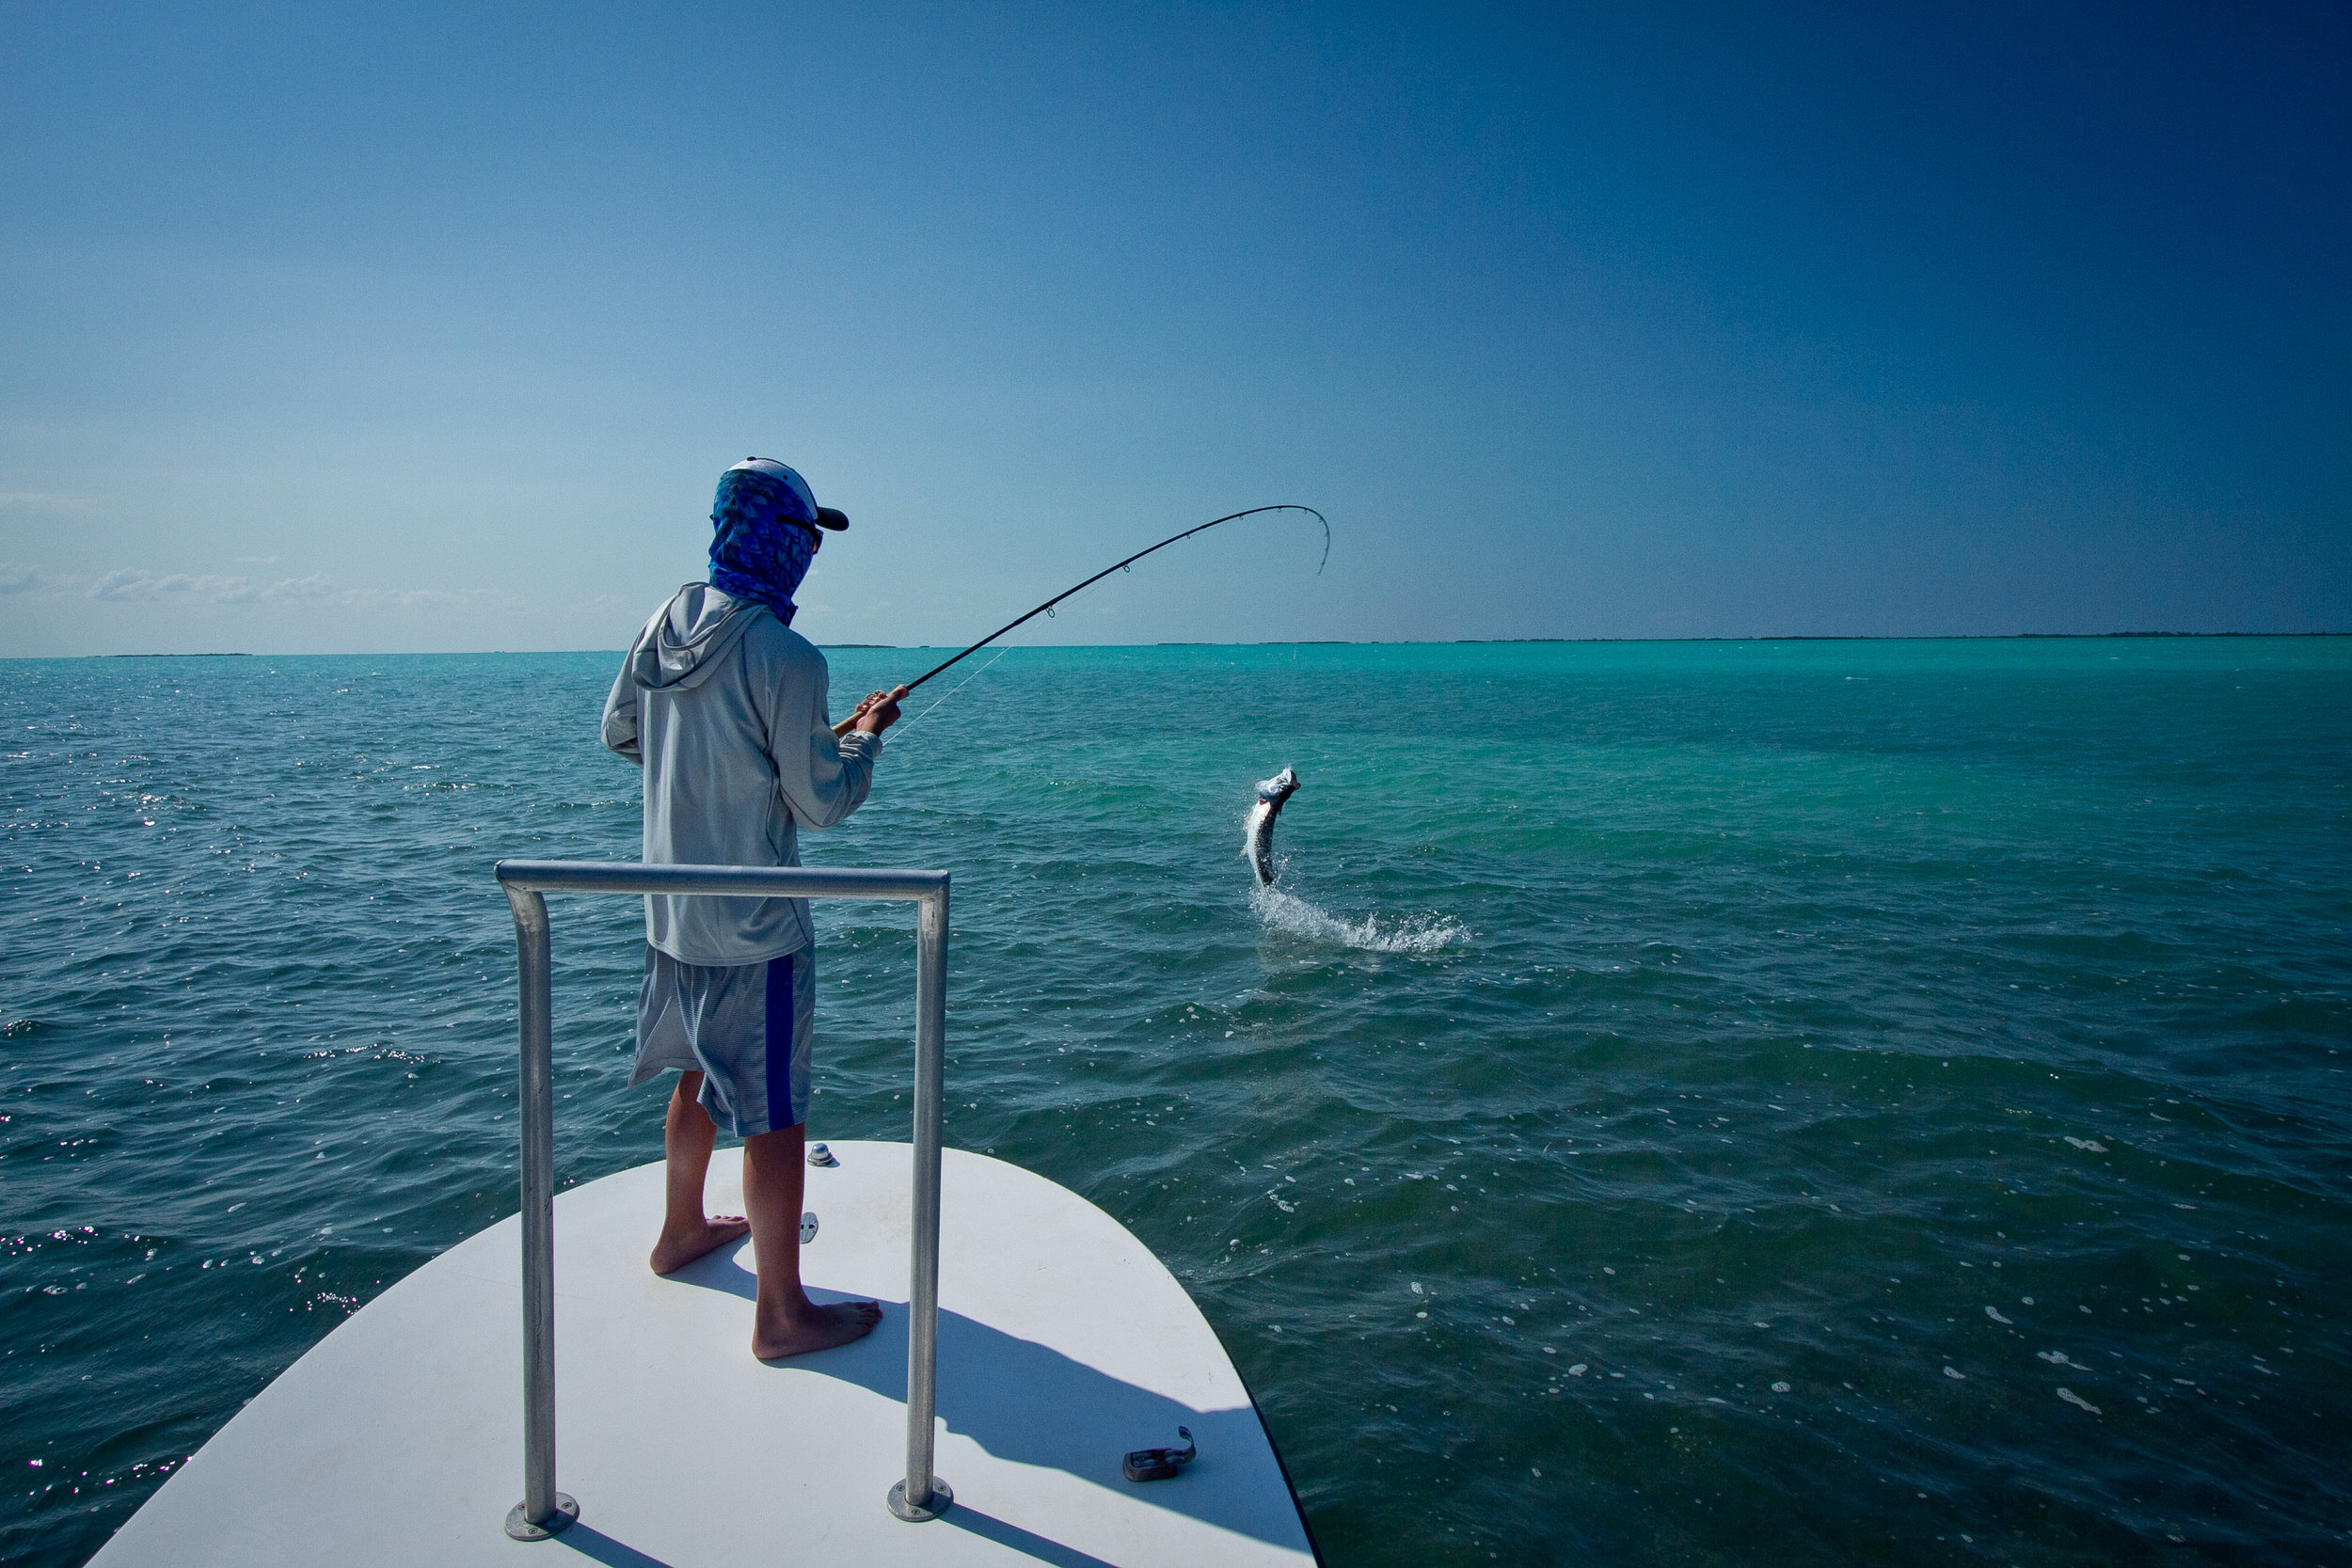 Fly Fishing for Tarpon, Cayo Cruz, Cuba